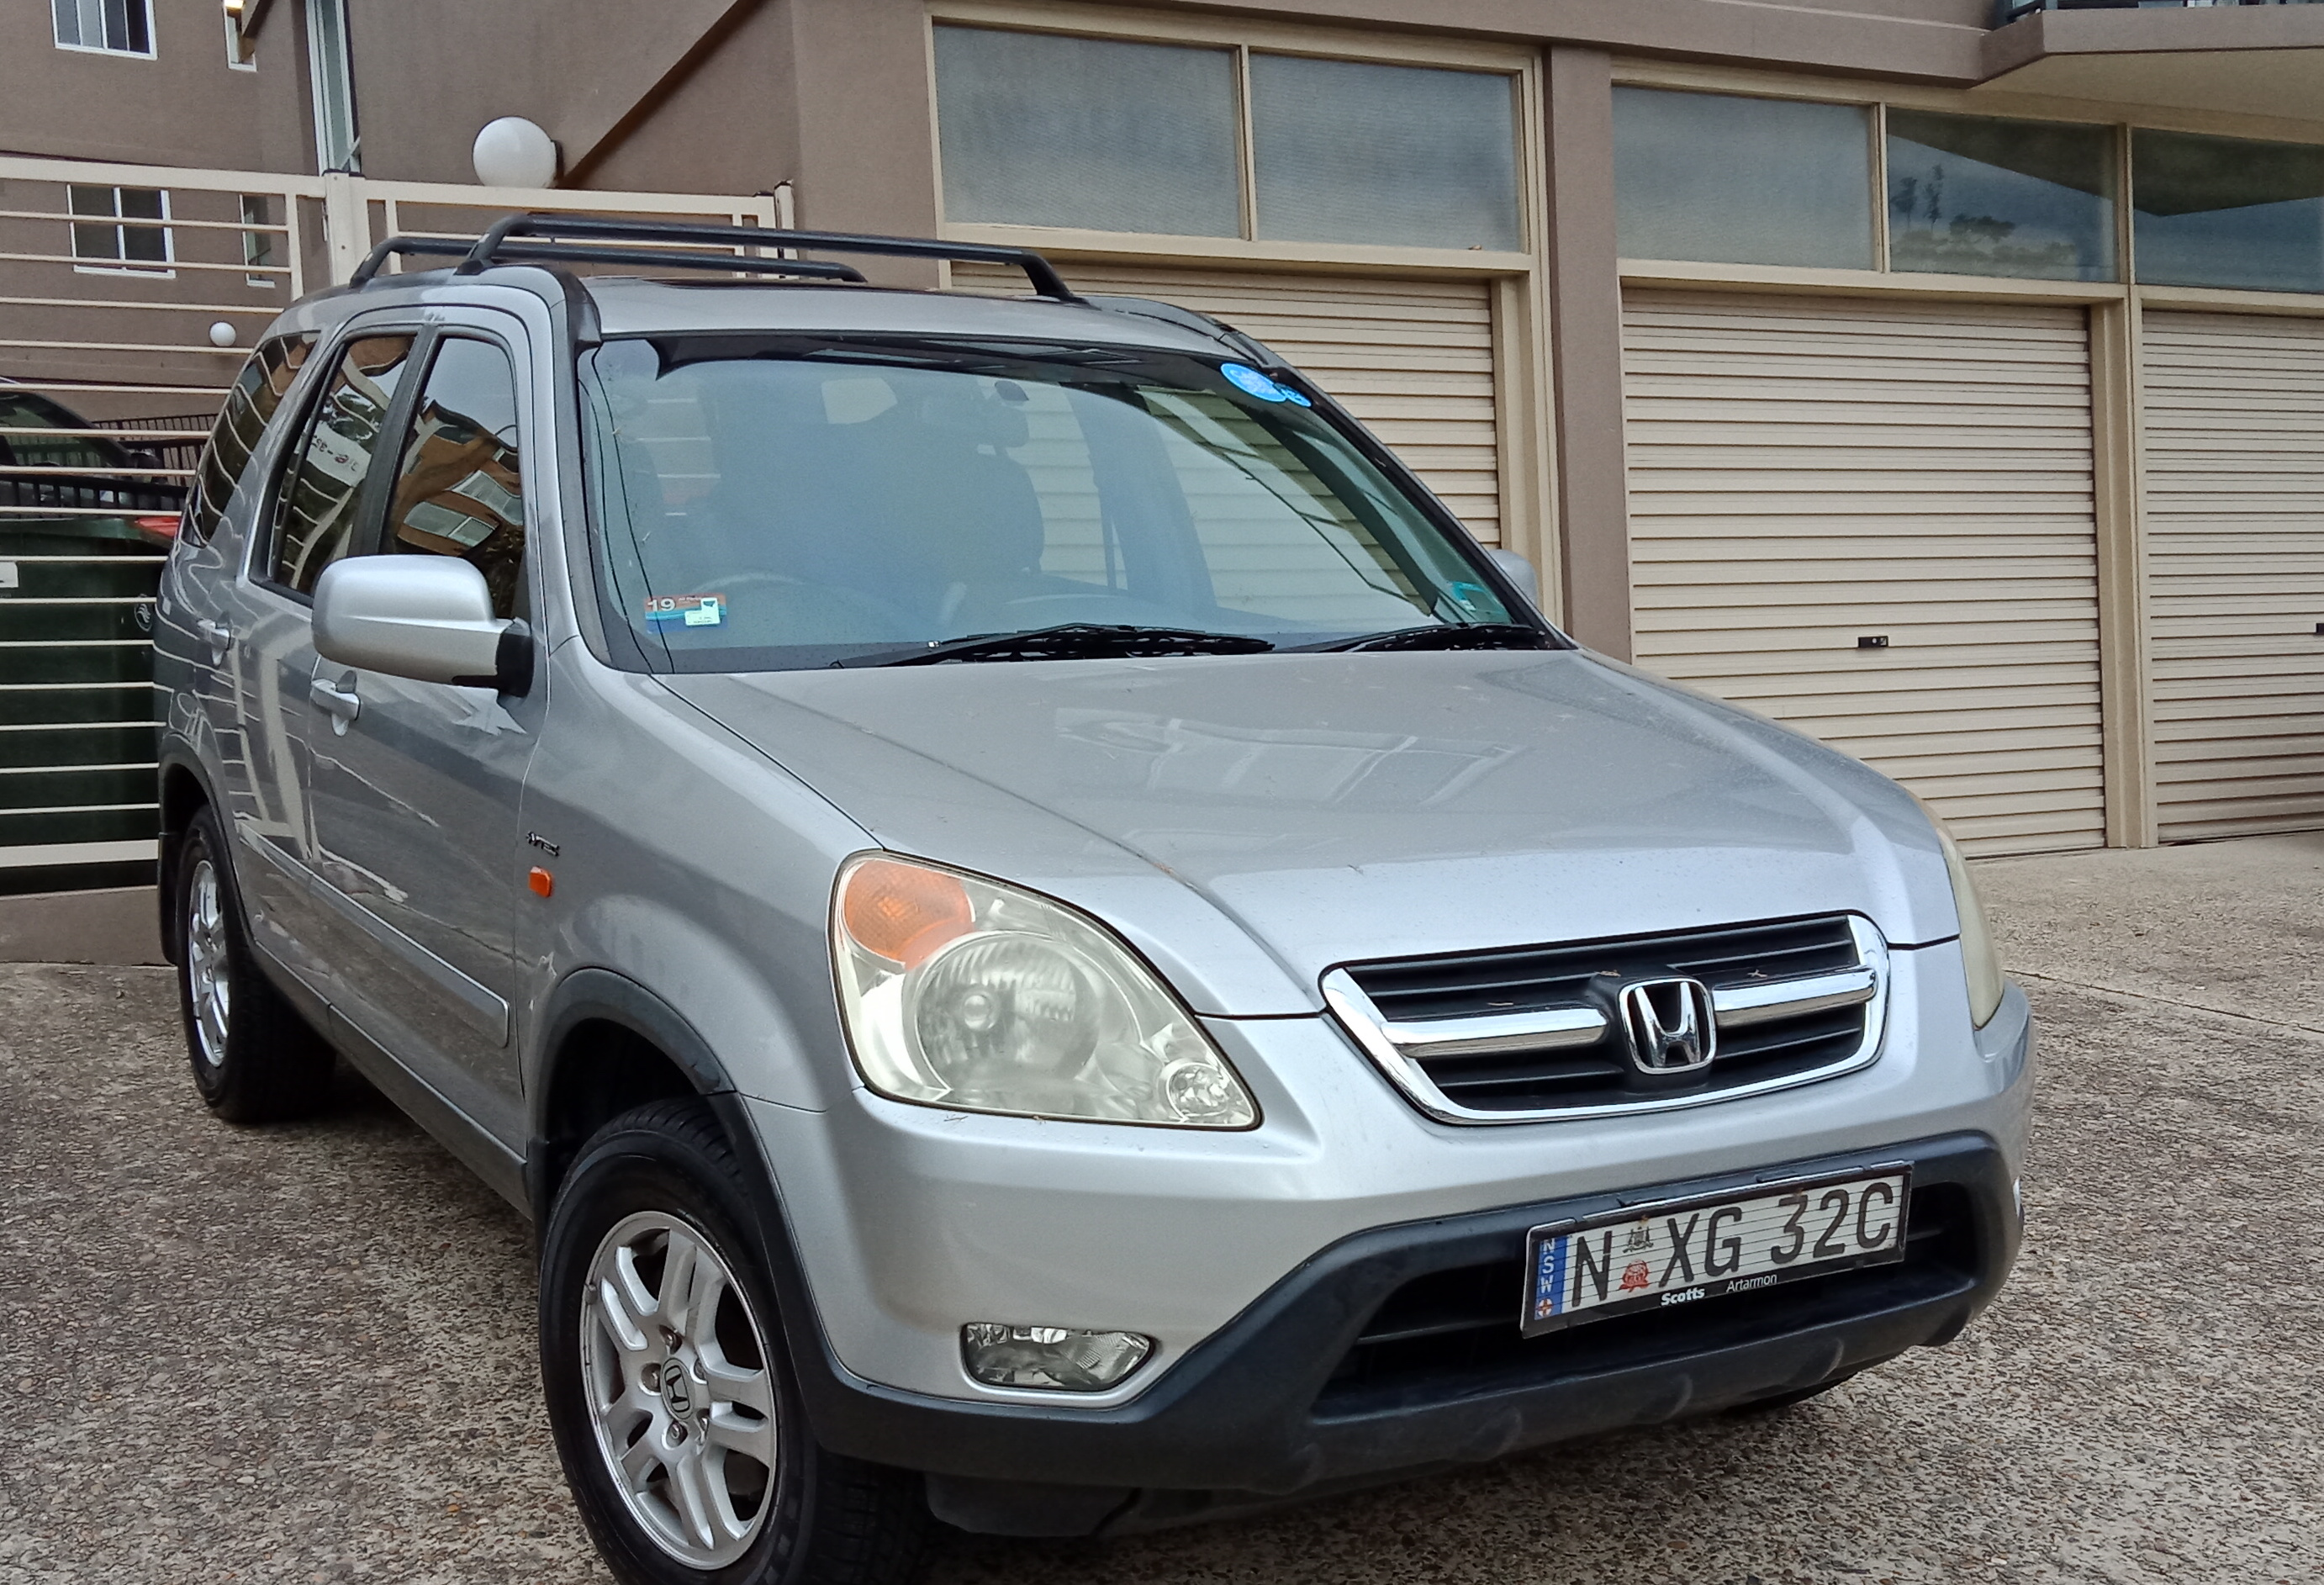 Picture of Dylan's 2004 Honda CR-V